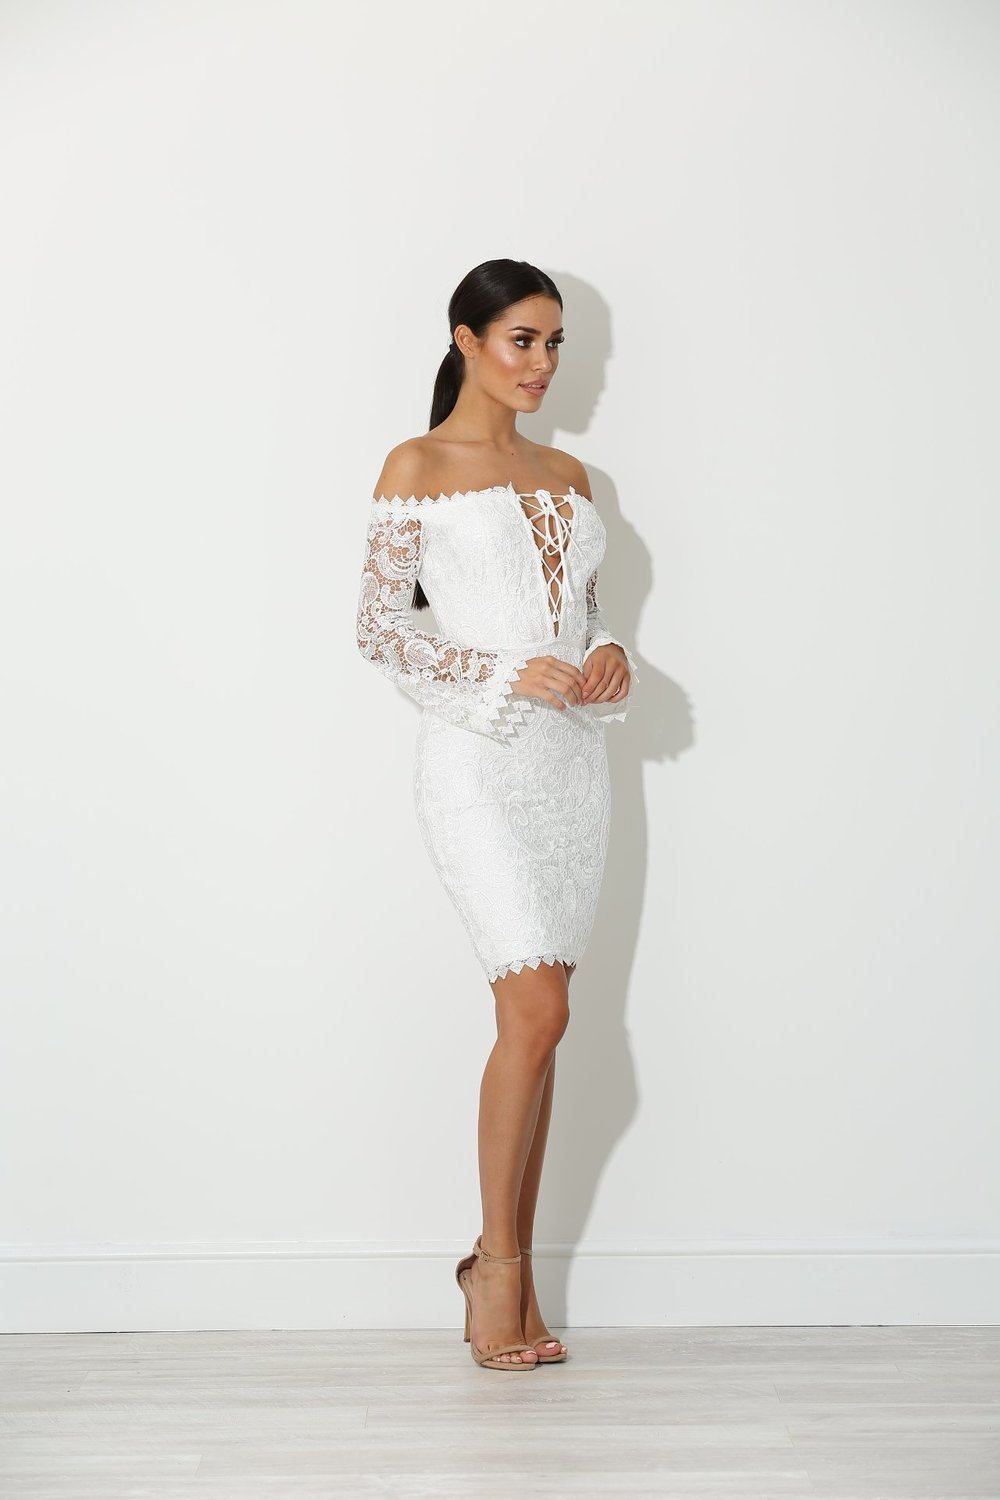 Kellen_Lace_Dress_White_2_2048x.jpeg